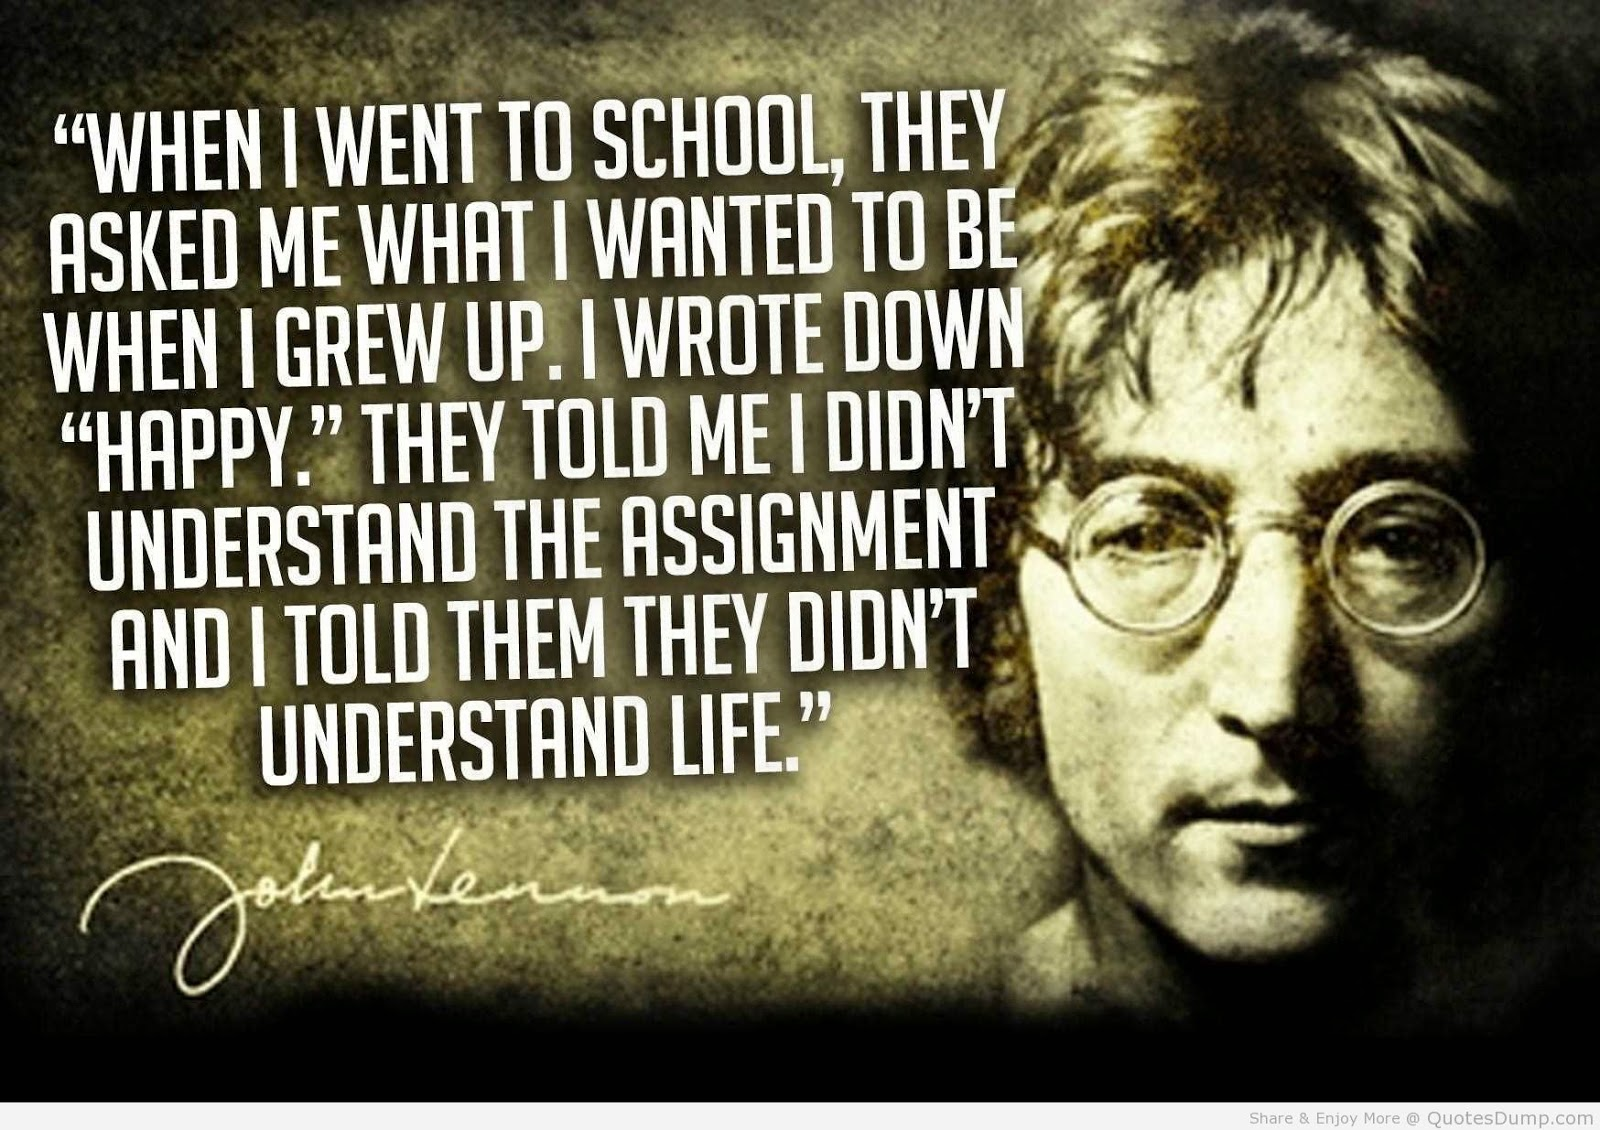 I Wrote Down Happy They Told Me Didnt Understand The Assignment And Them Life John Lennon